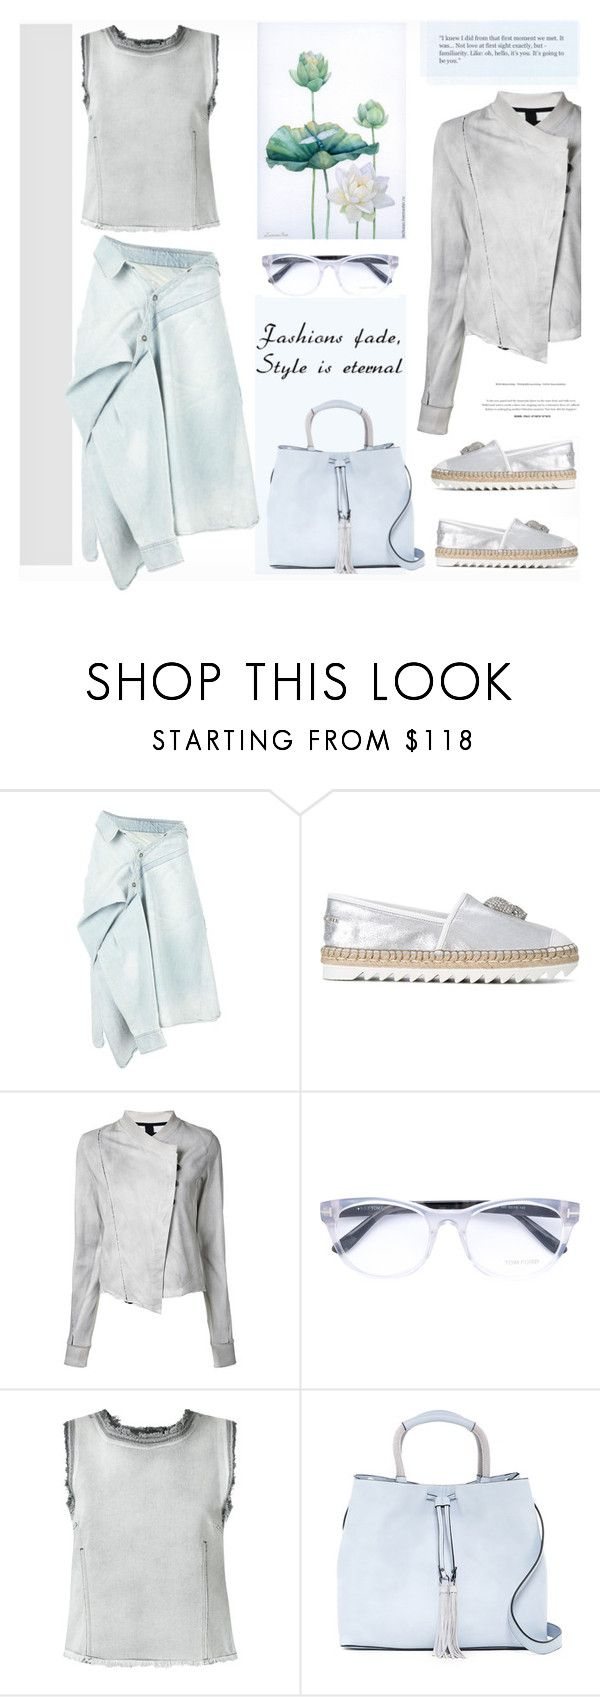 """Fading"" by snowbell ❤ liked on Polyvore featuring Faith Connexion, Philipp Plein, Thom Krom, Tom Ford, Golden Goose, French Connection and Eterna"